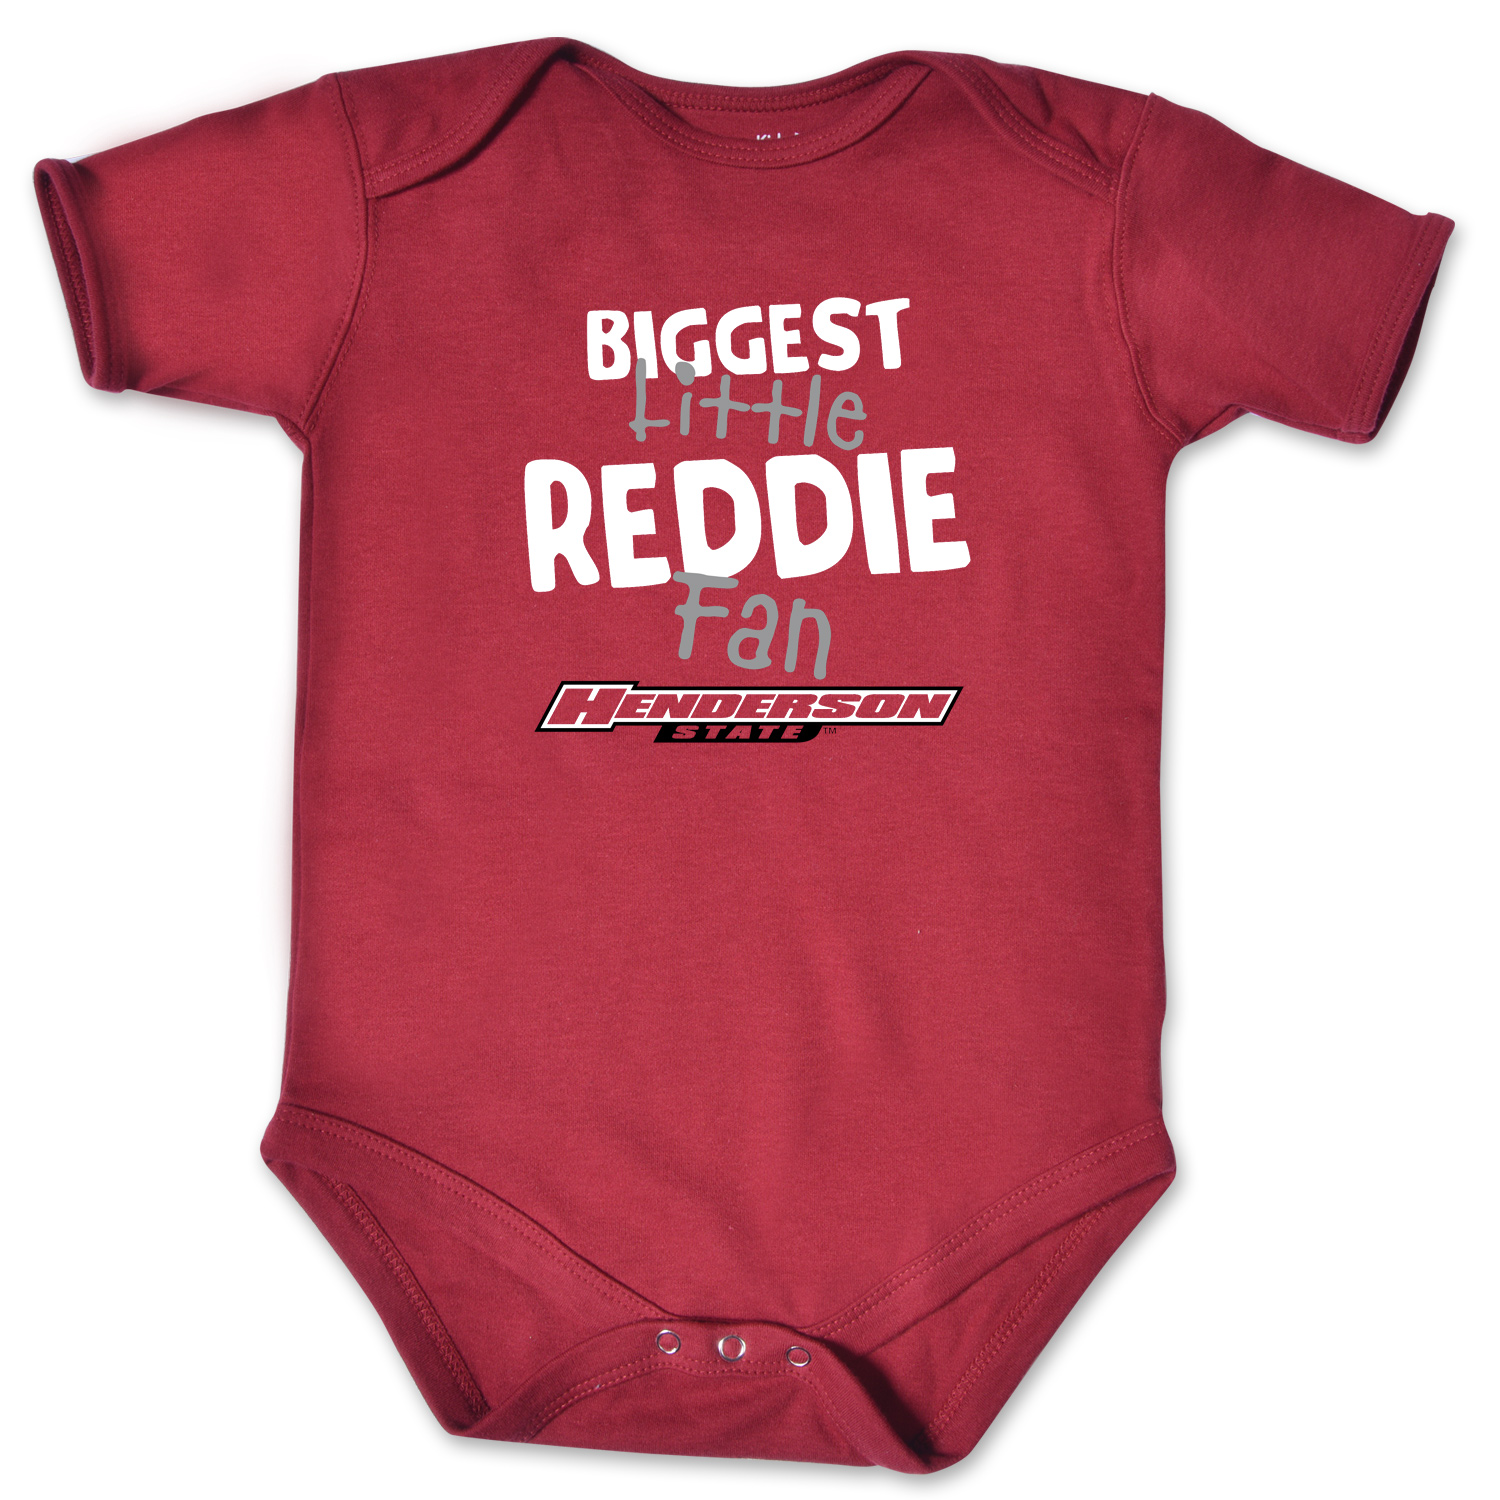 Biggest Little Reddie Fan Infant Bodysuit